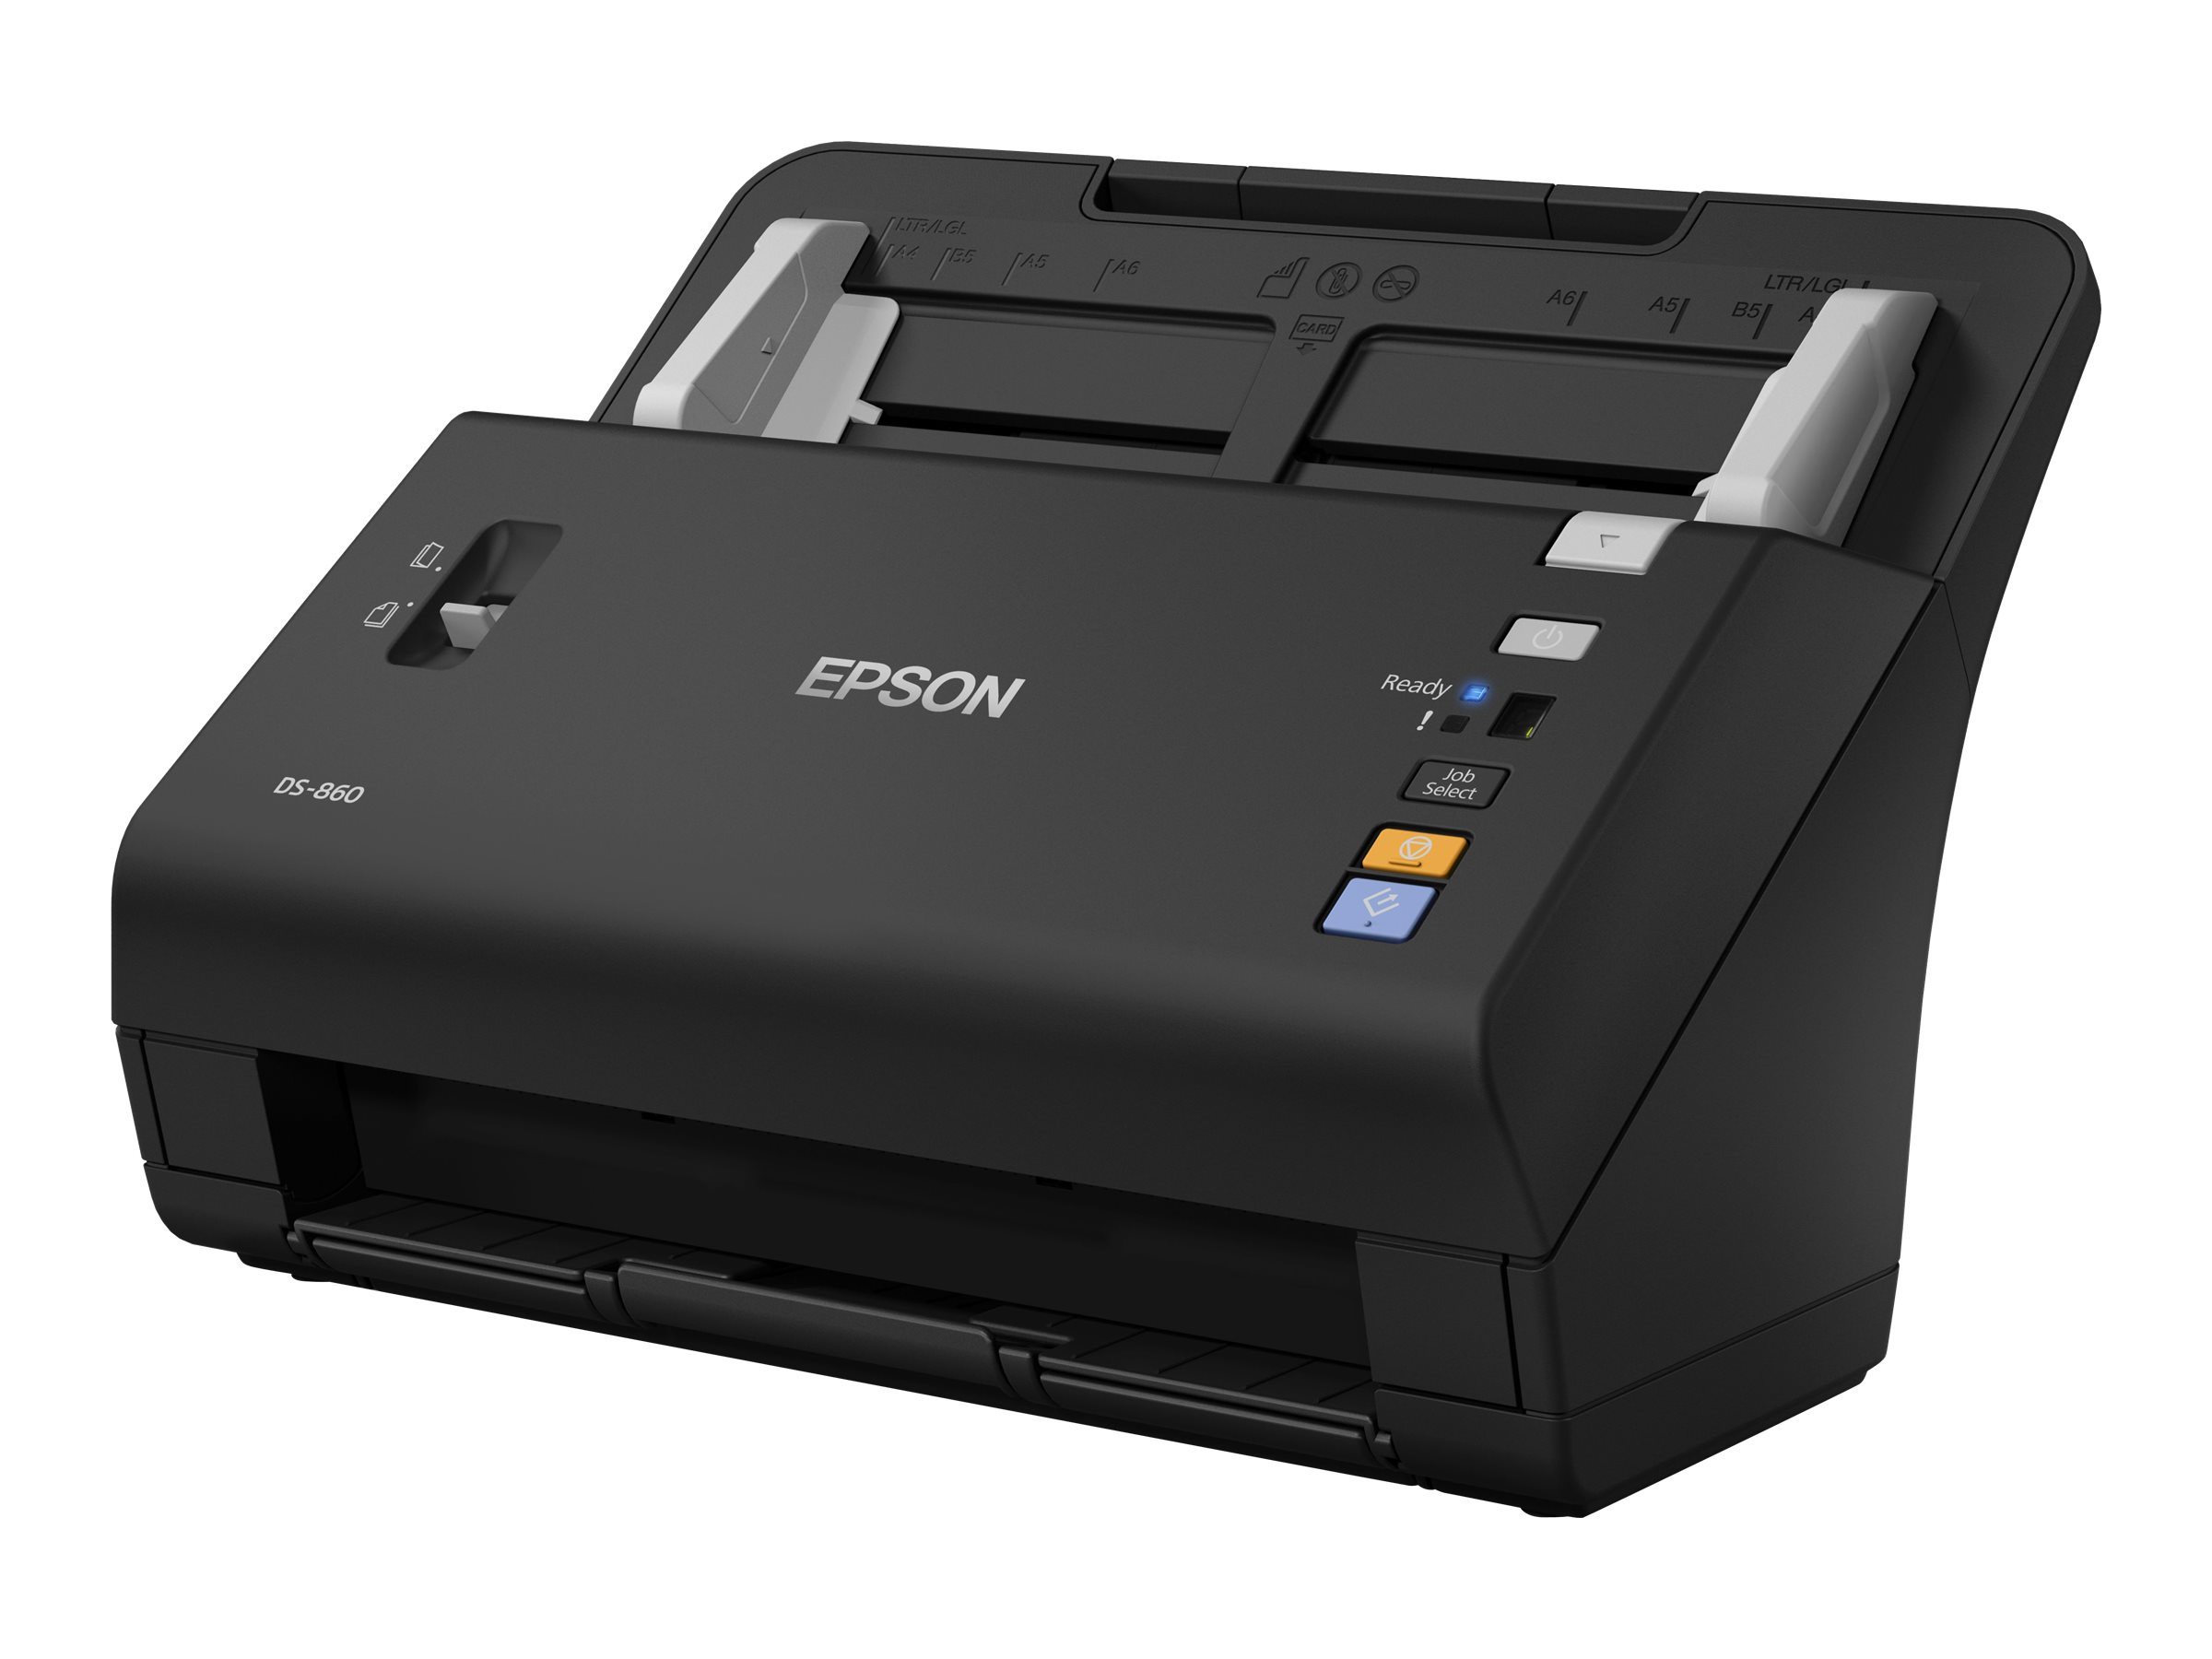 Epson WorkForce DS-860N - Dokumentenscanner